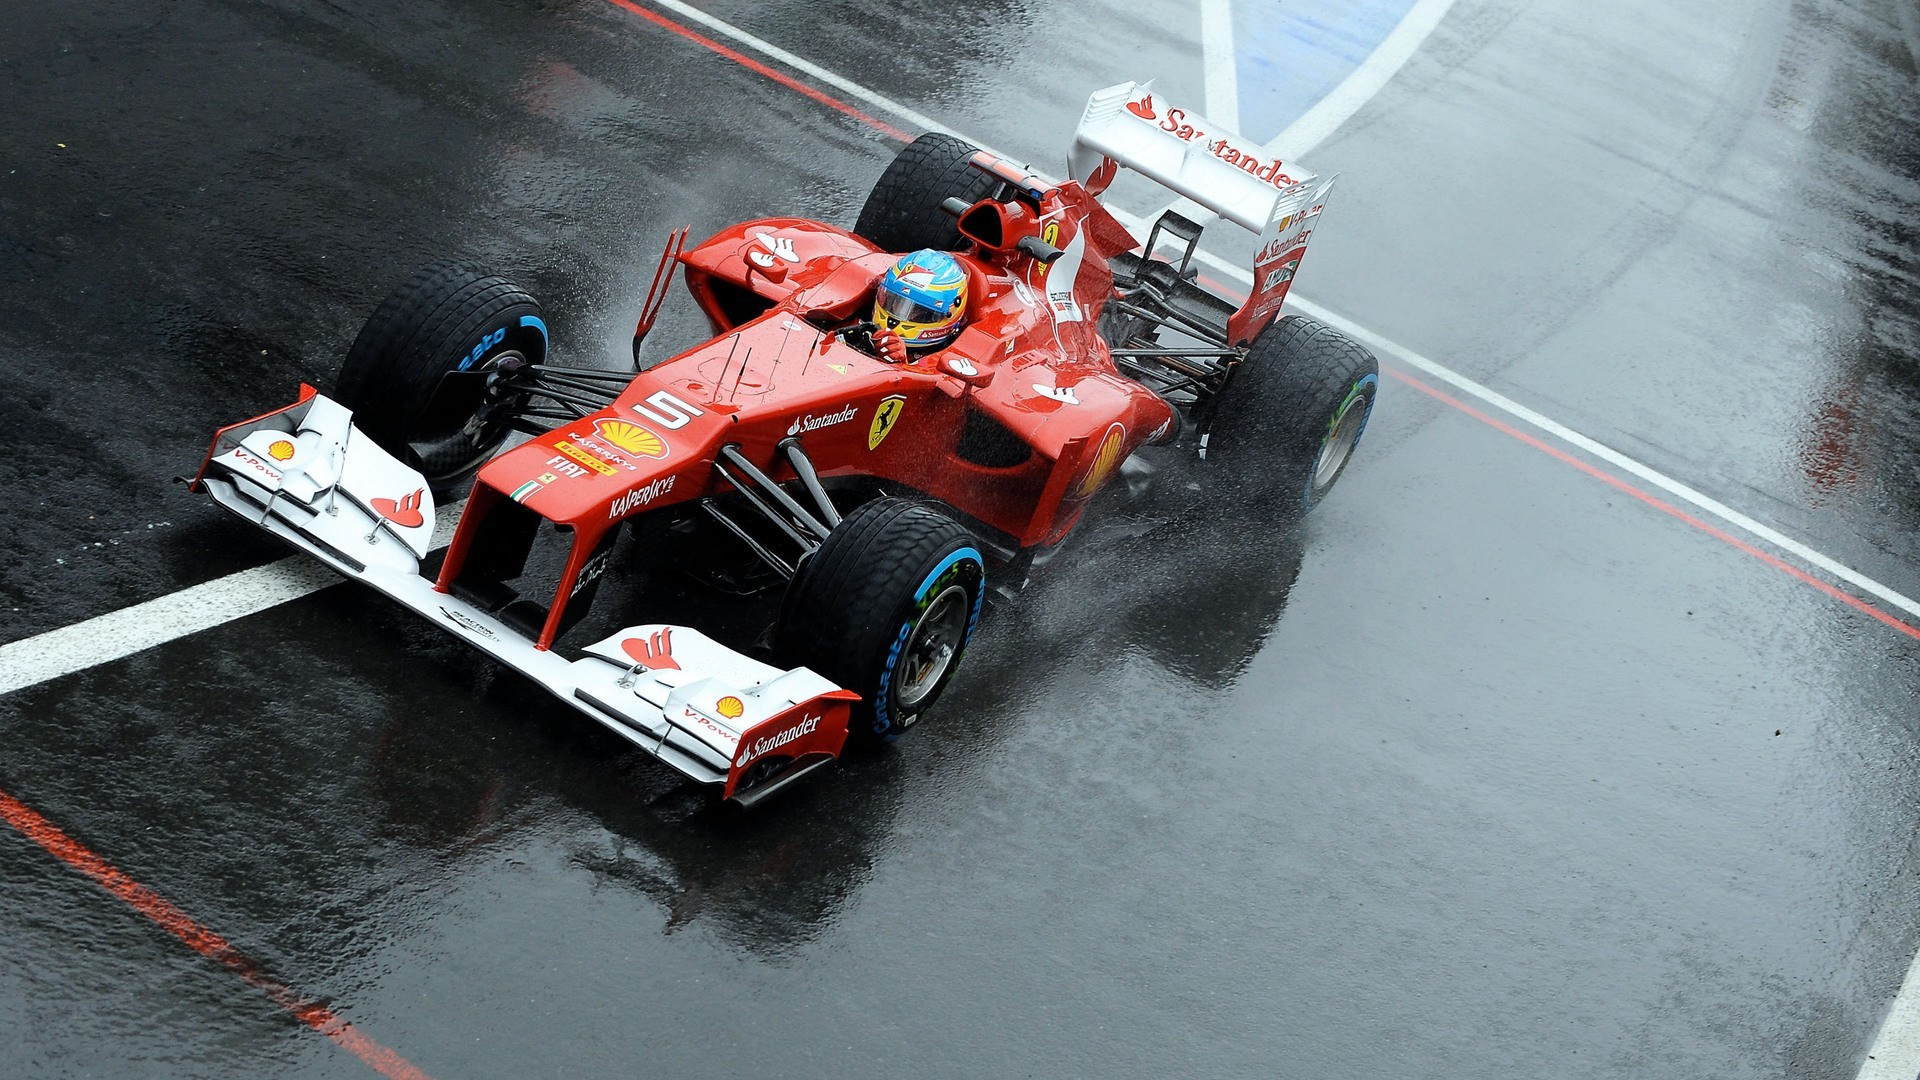 HD F1 Racing Wallpapers and Photos | HD Cars Wallpapers